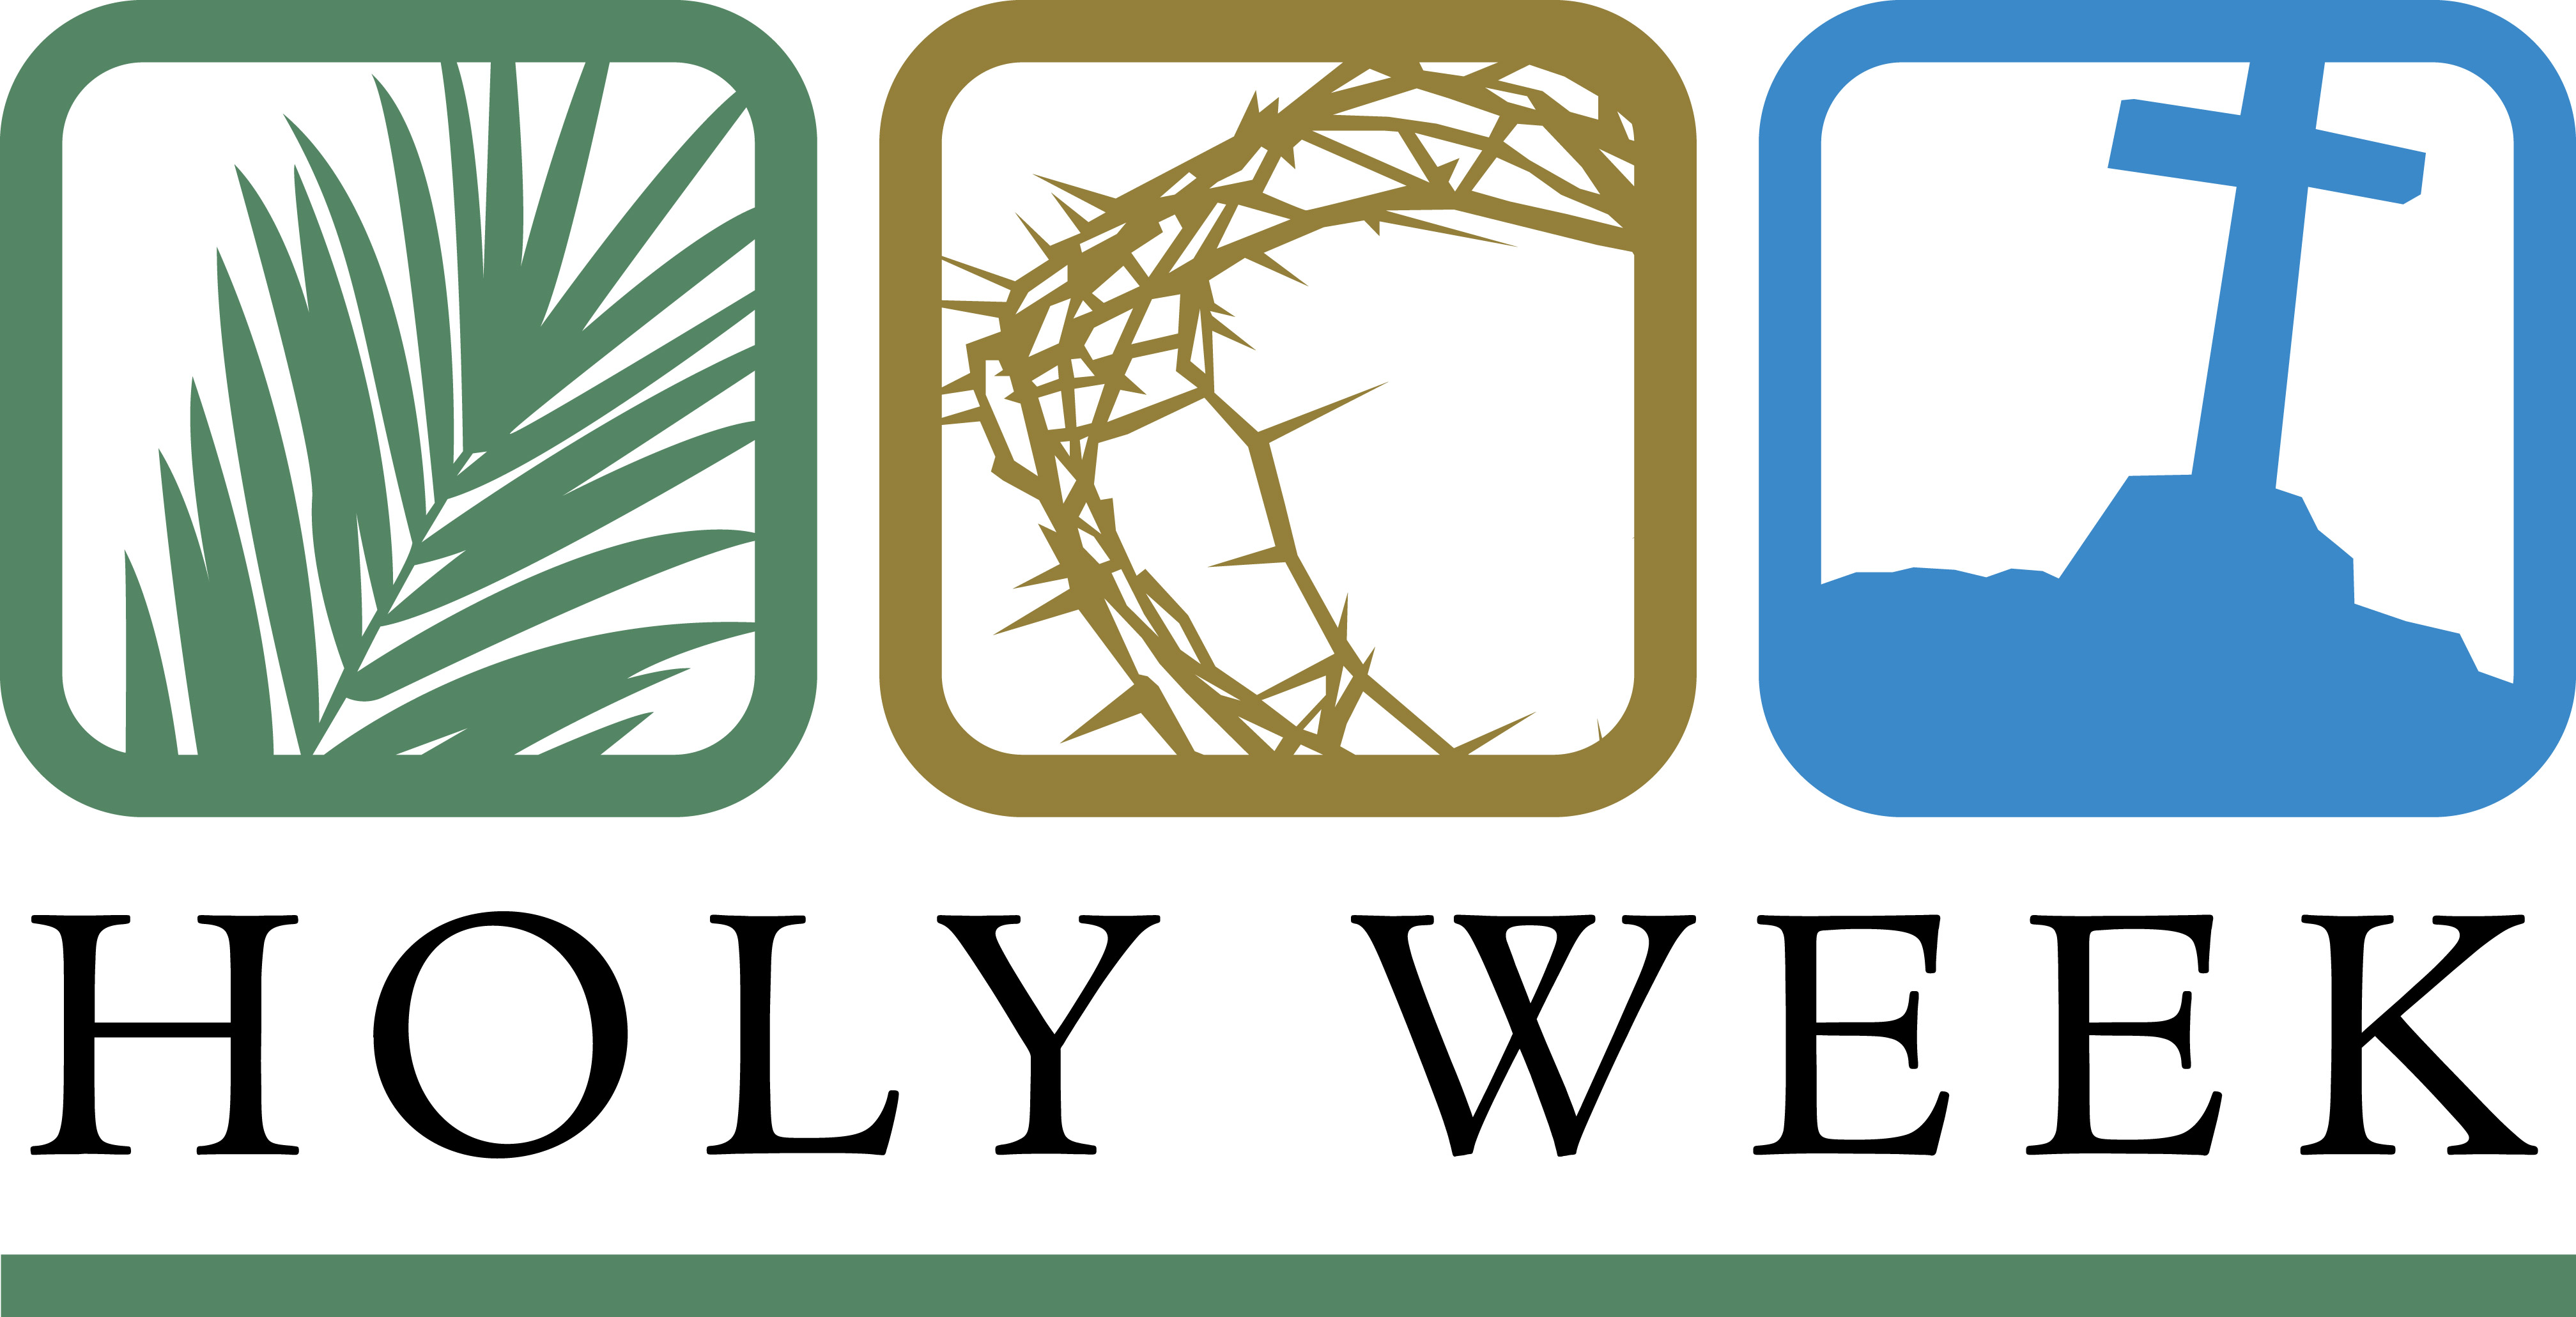 On The Baptist Observance Of Holy Week   Walking Together Ministries